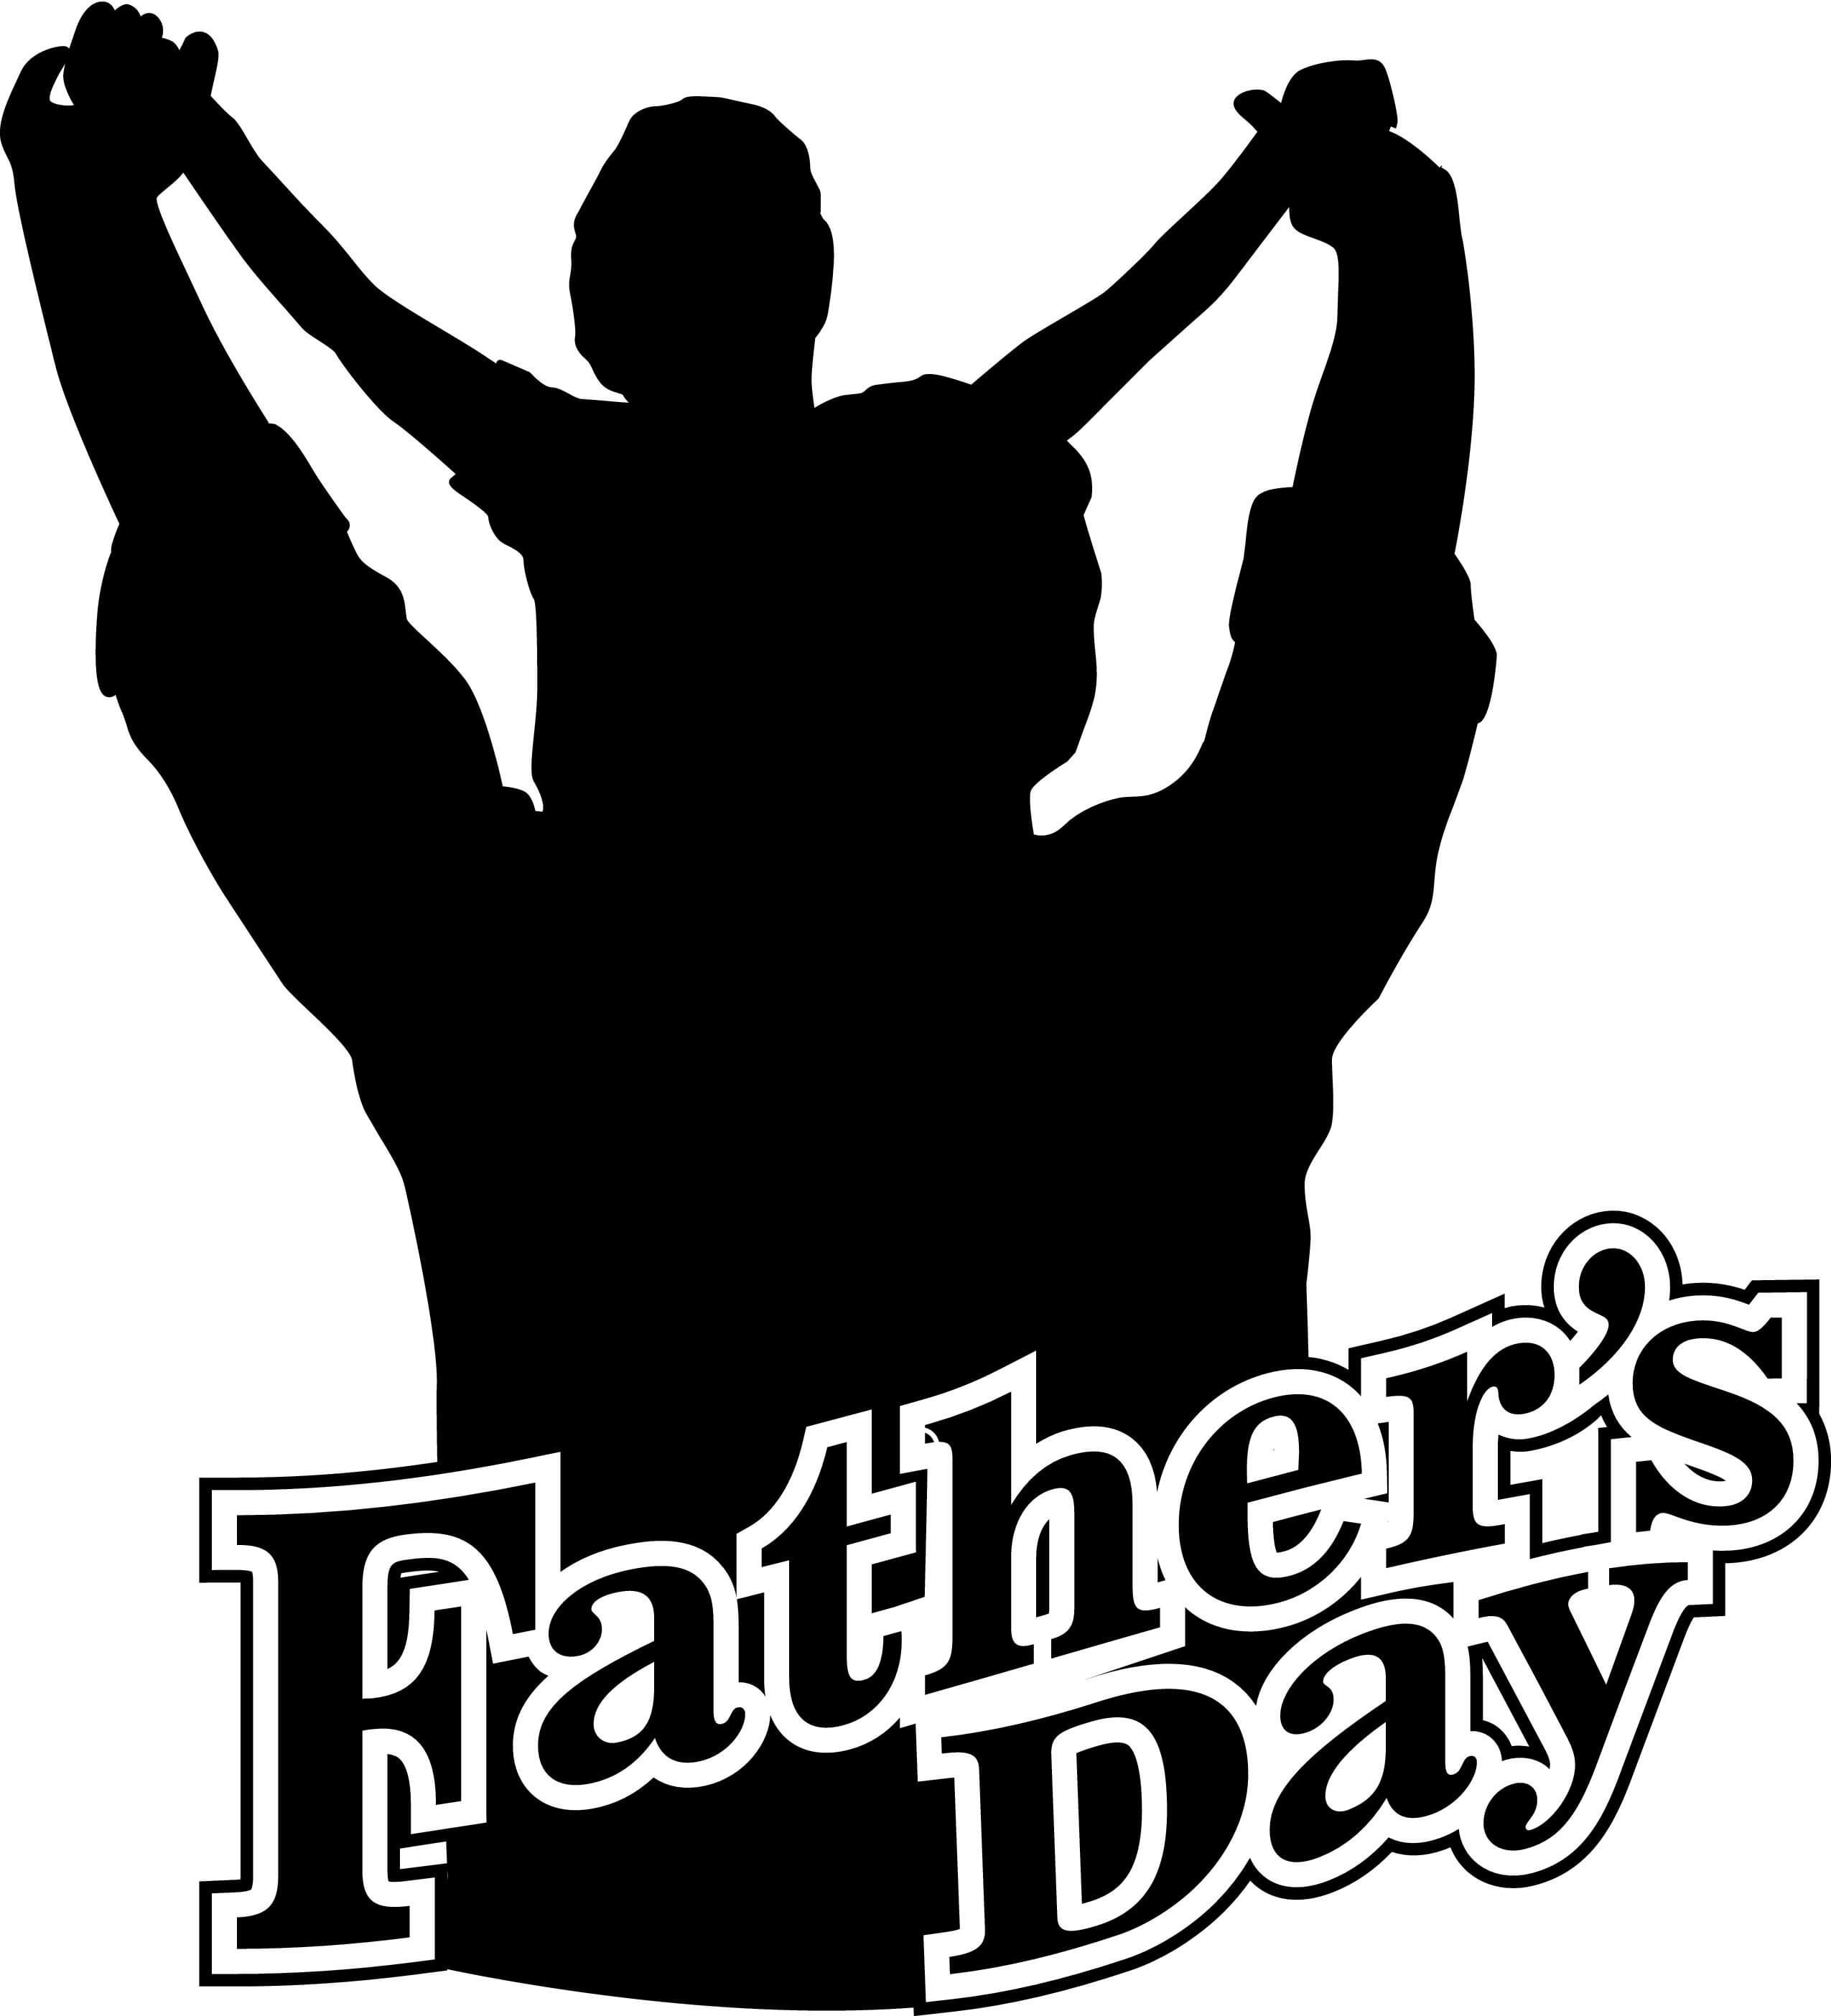 happy fathers day silhouette hd wallpaper